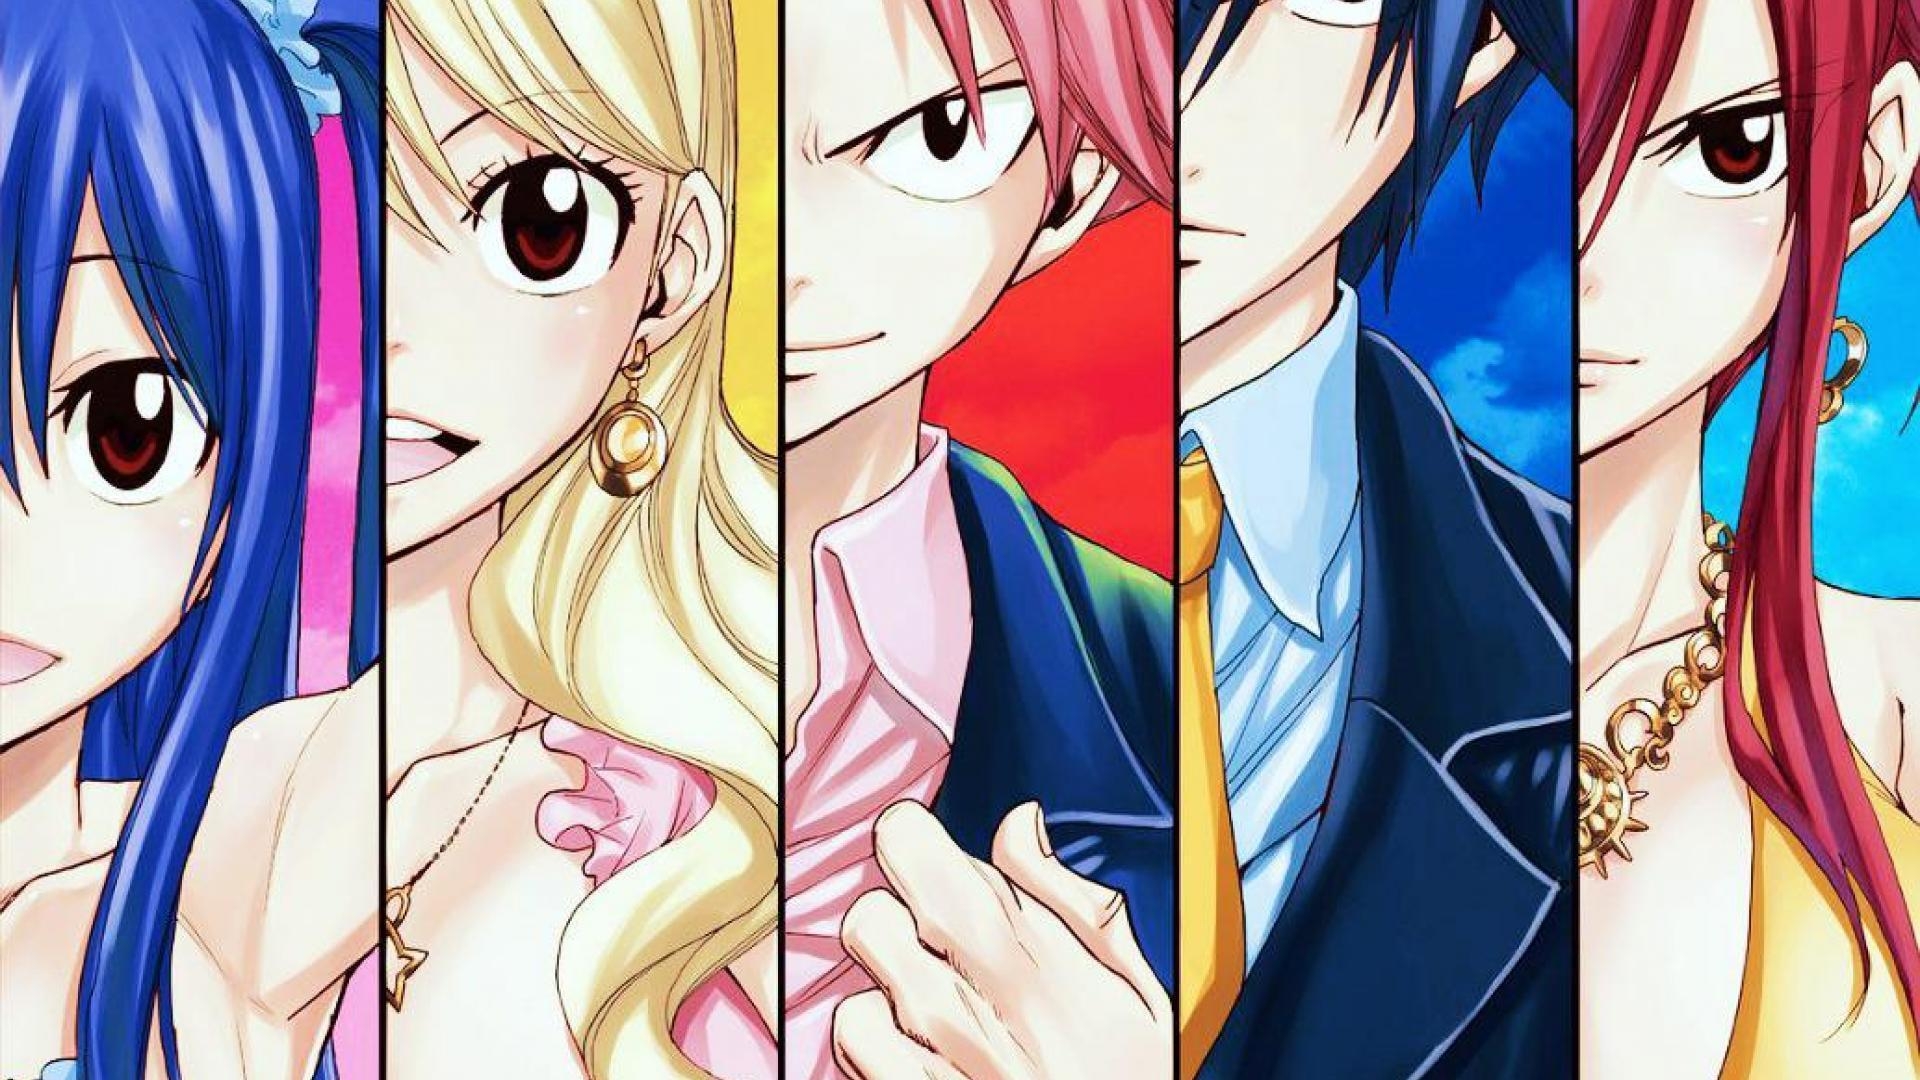 Fairy Tail 2017 Wallpapers HD - Wallpaper Cave